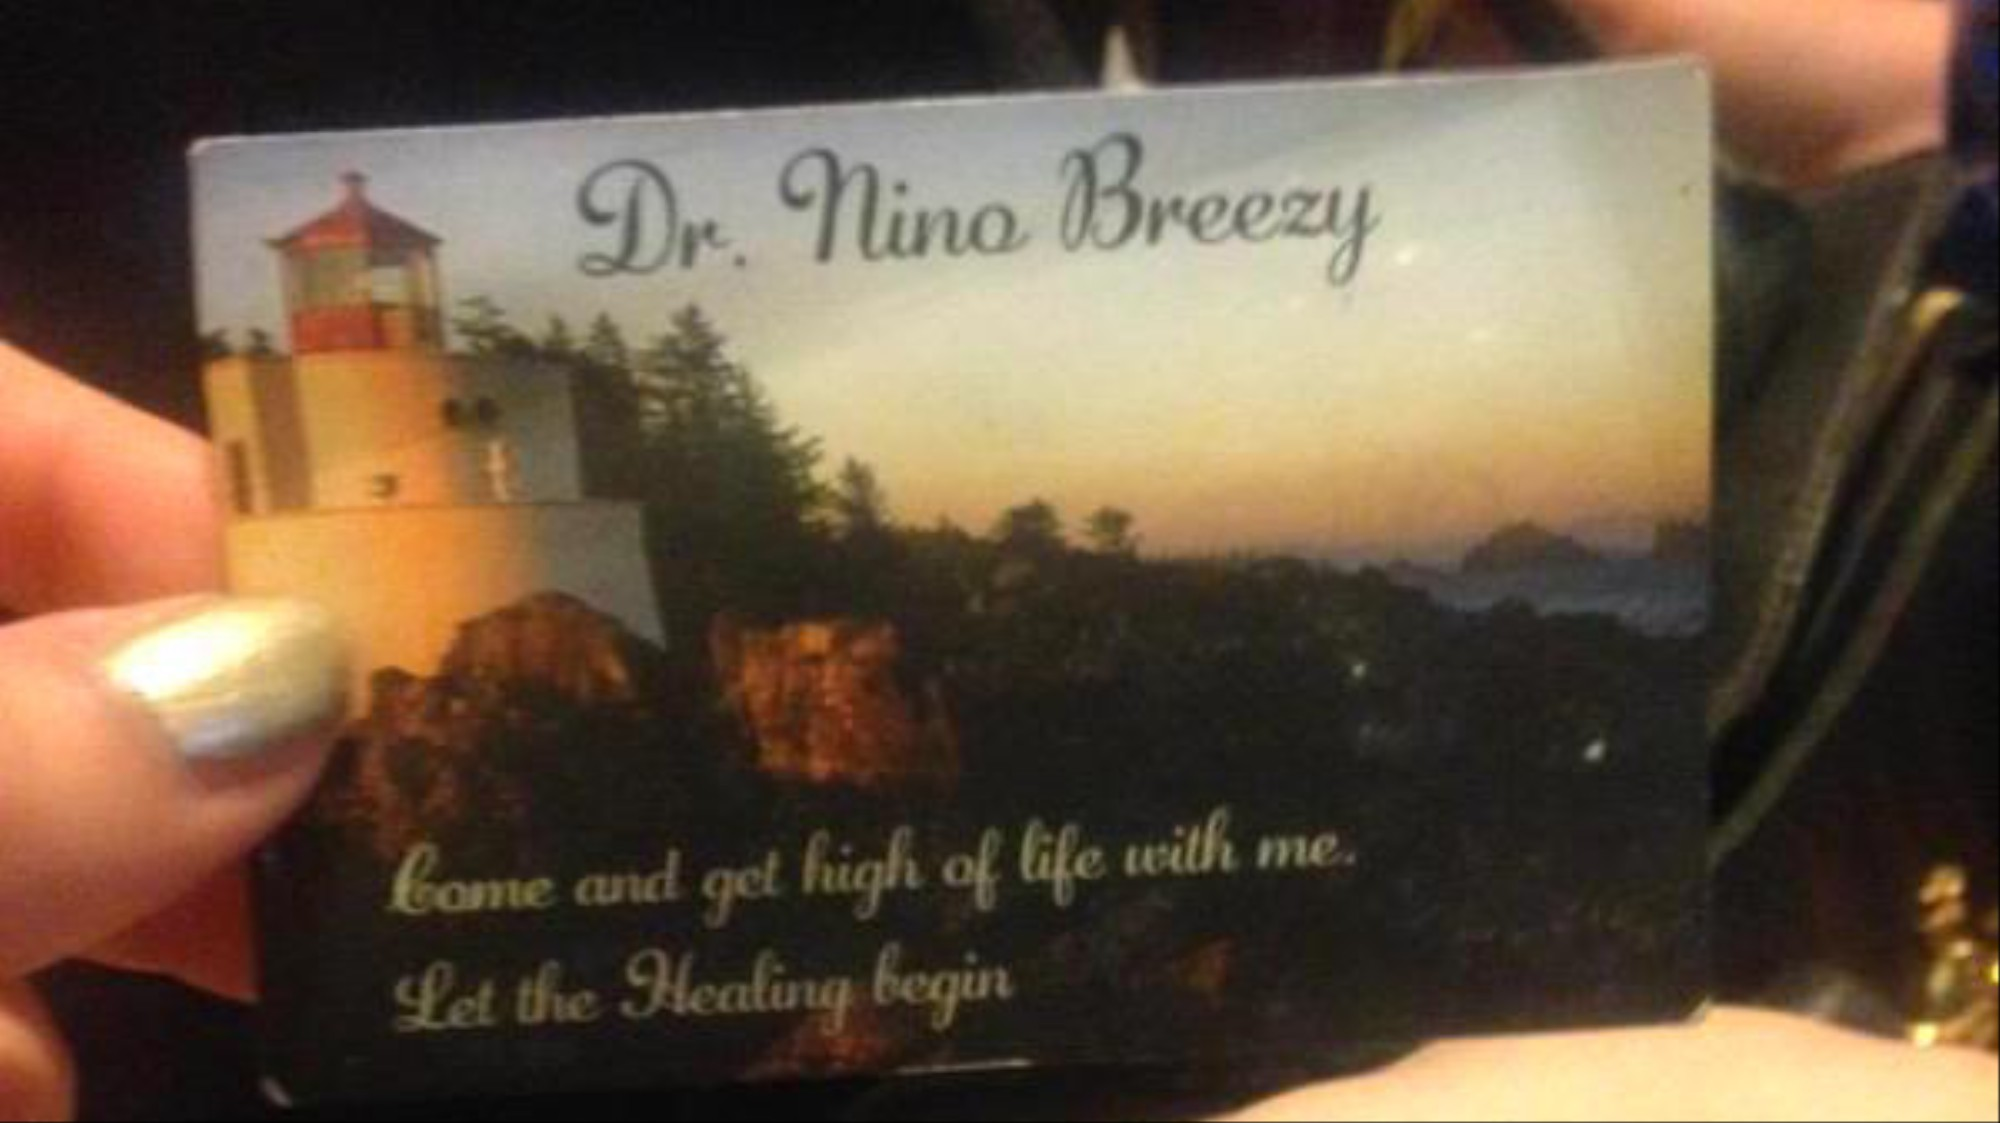 Party Line 24/7': Photos of Drug Dealers' Business Cards - VICE